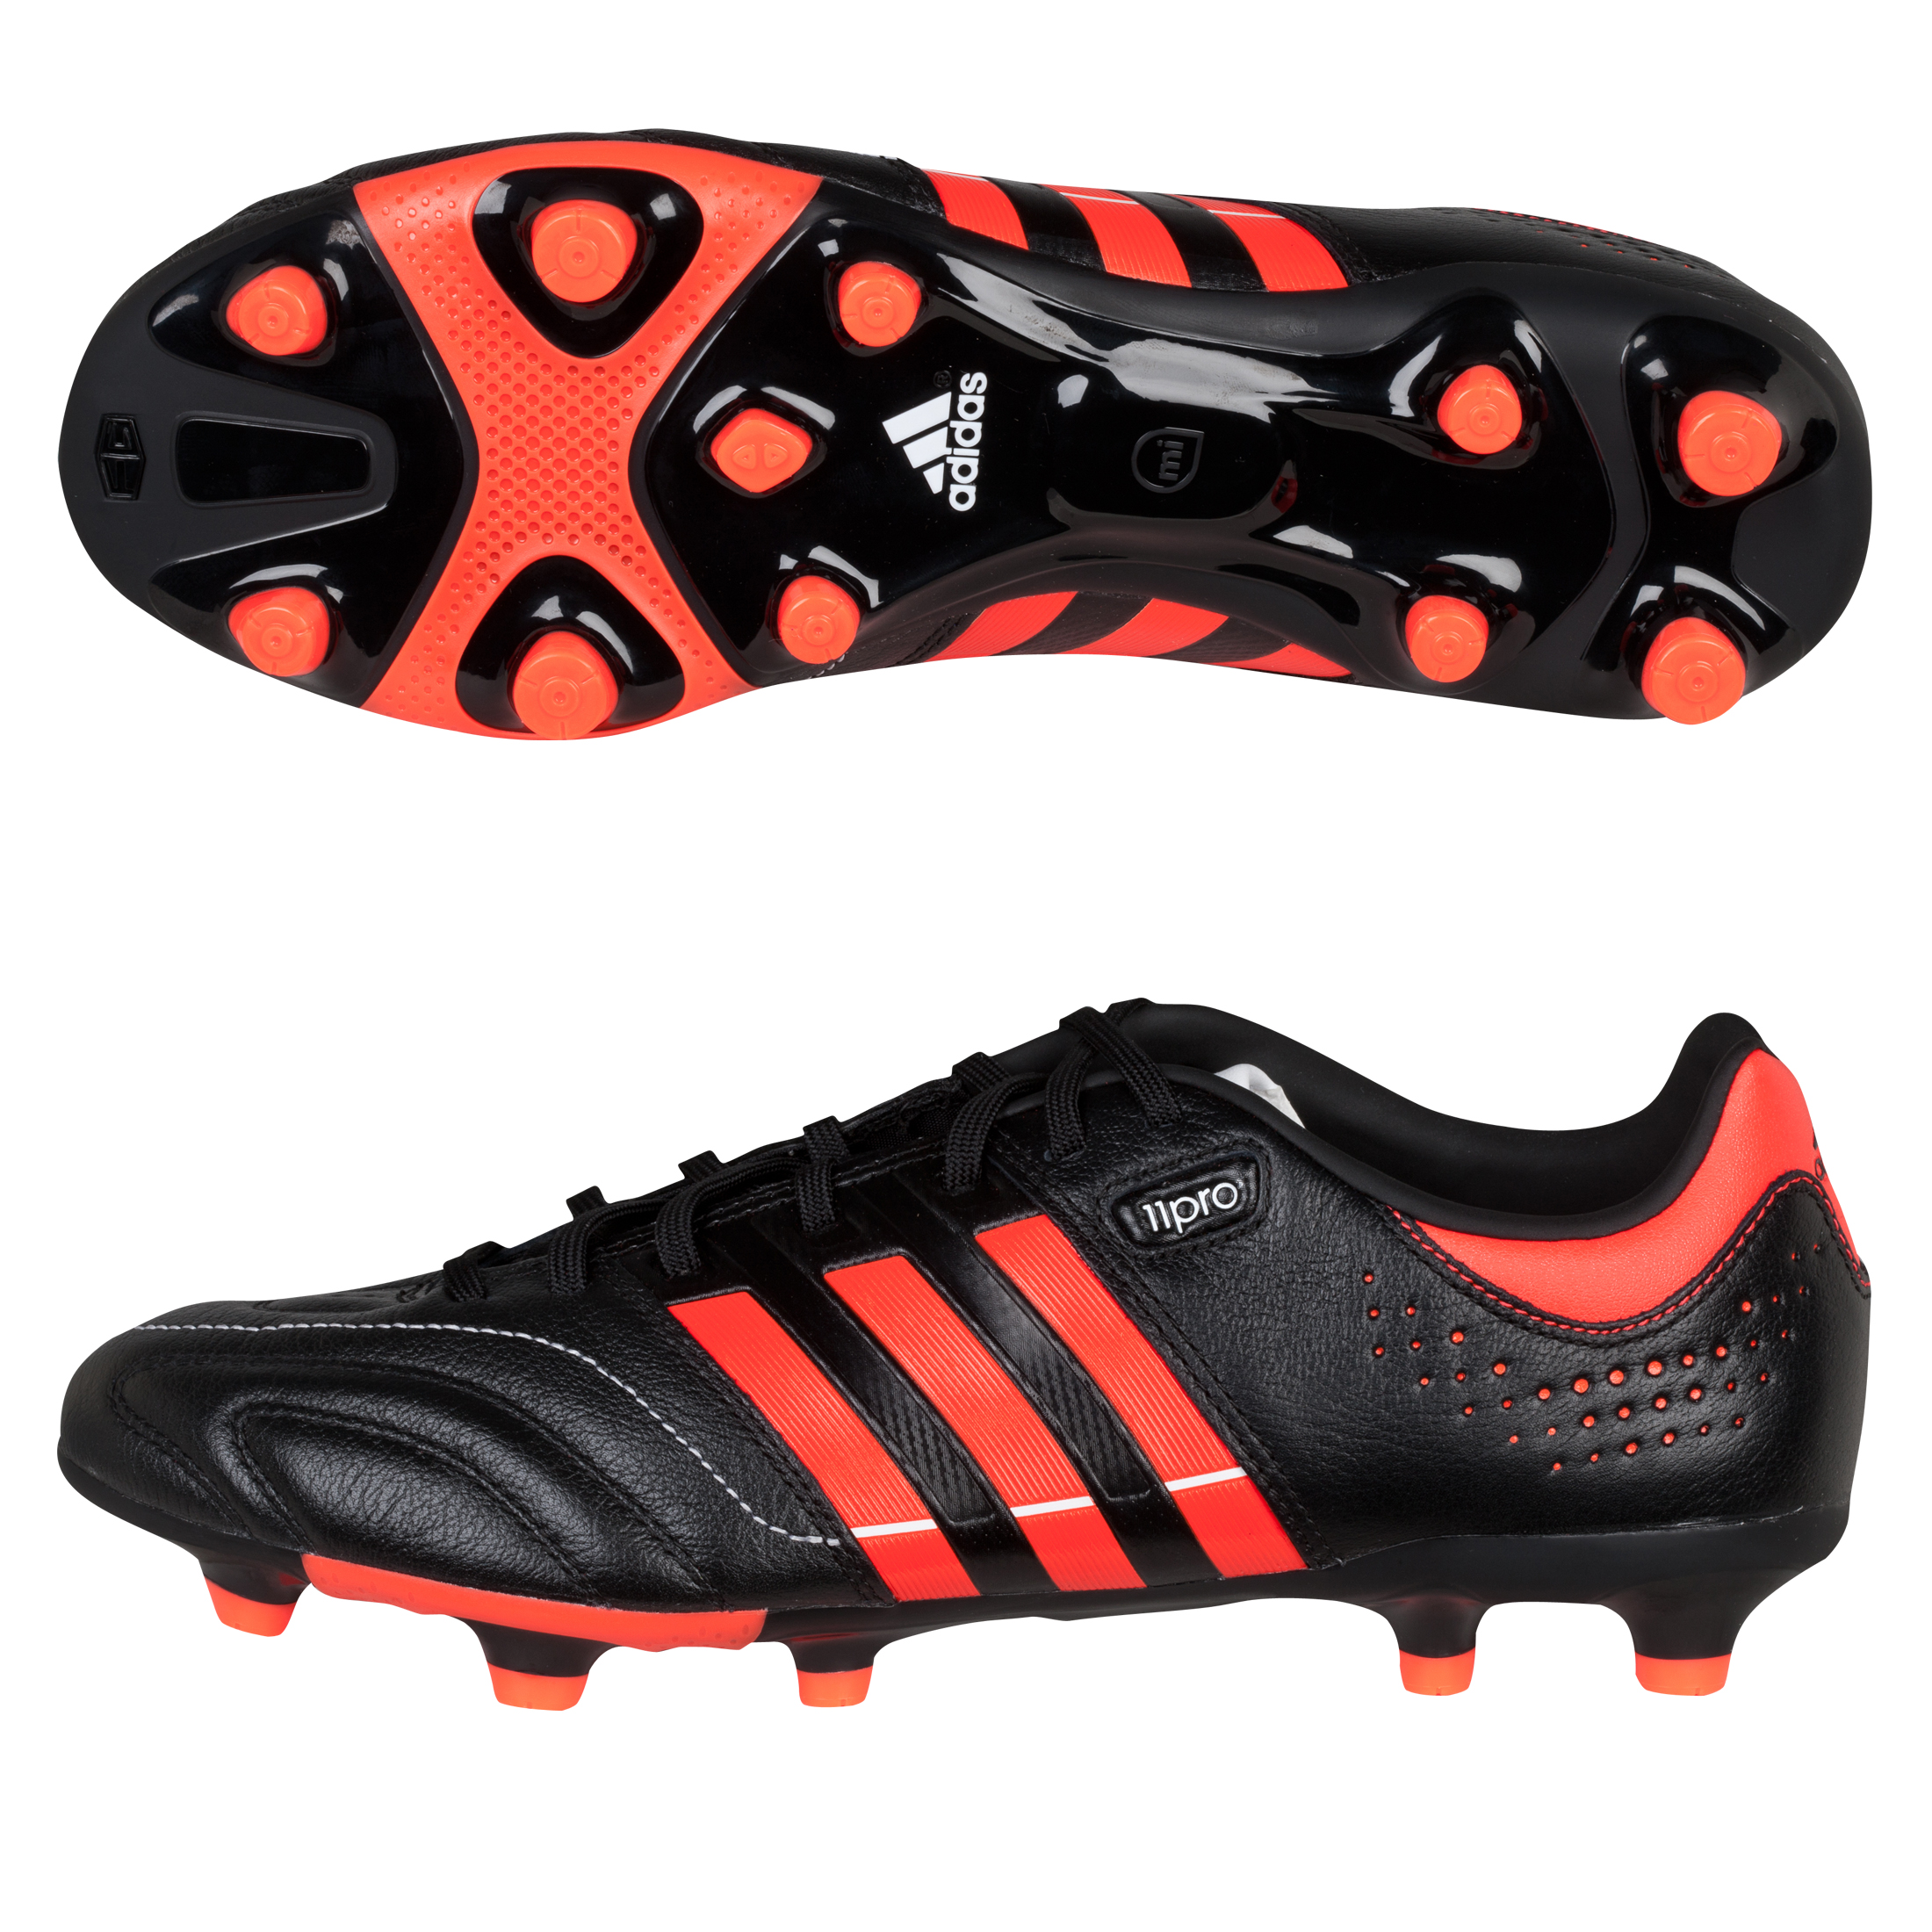 Adidas 11Core TRX Firm Ground Football Boots - Black/Infrared/White